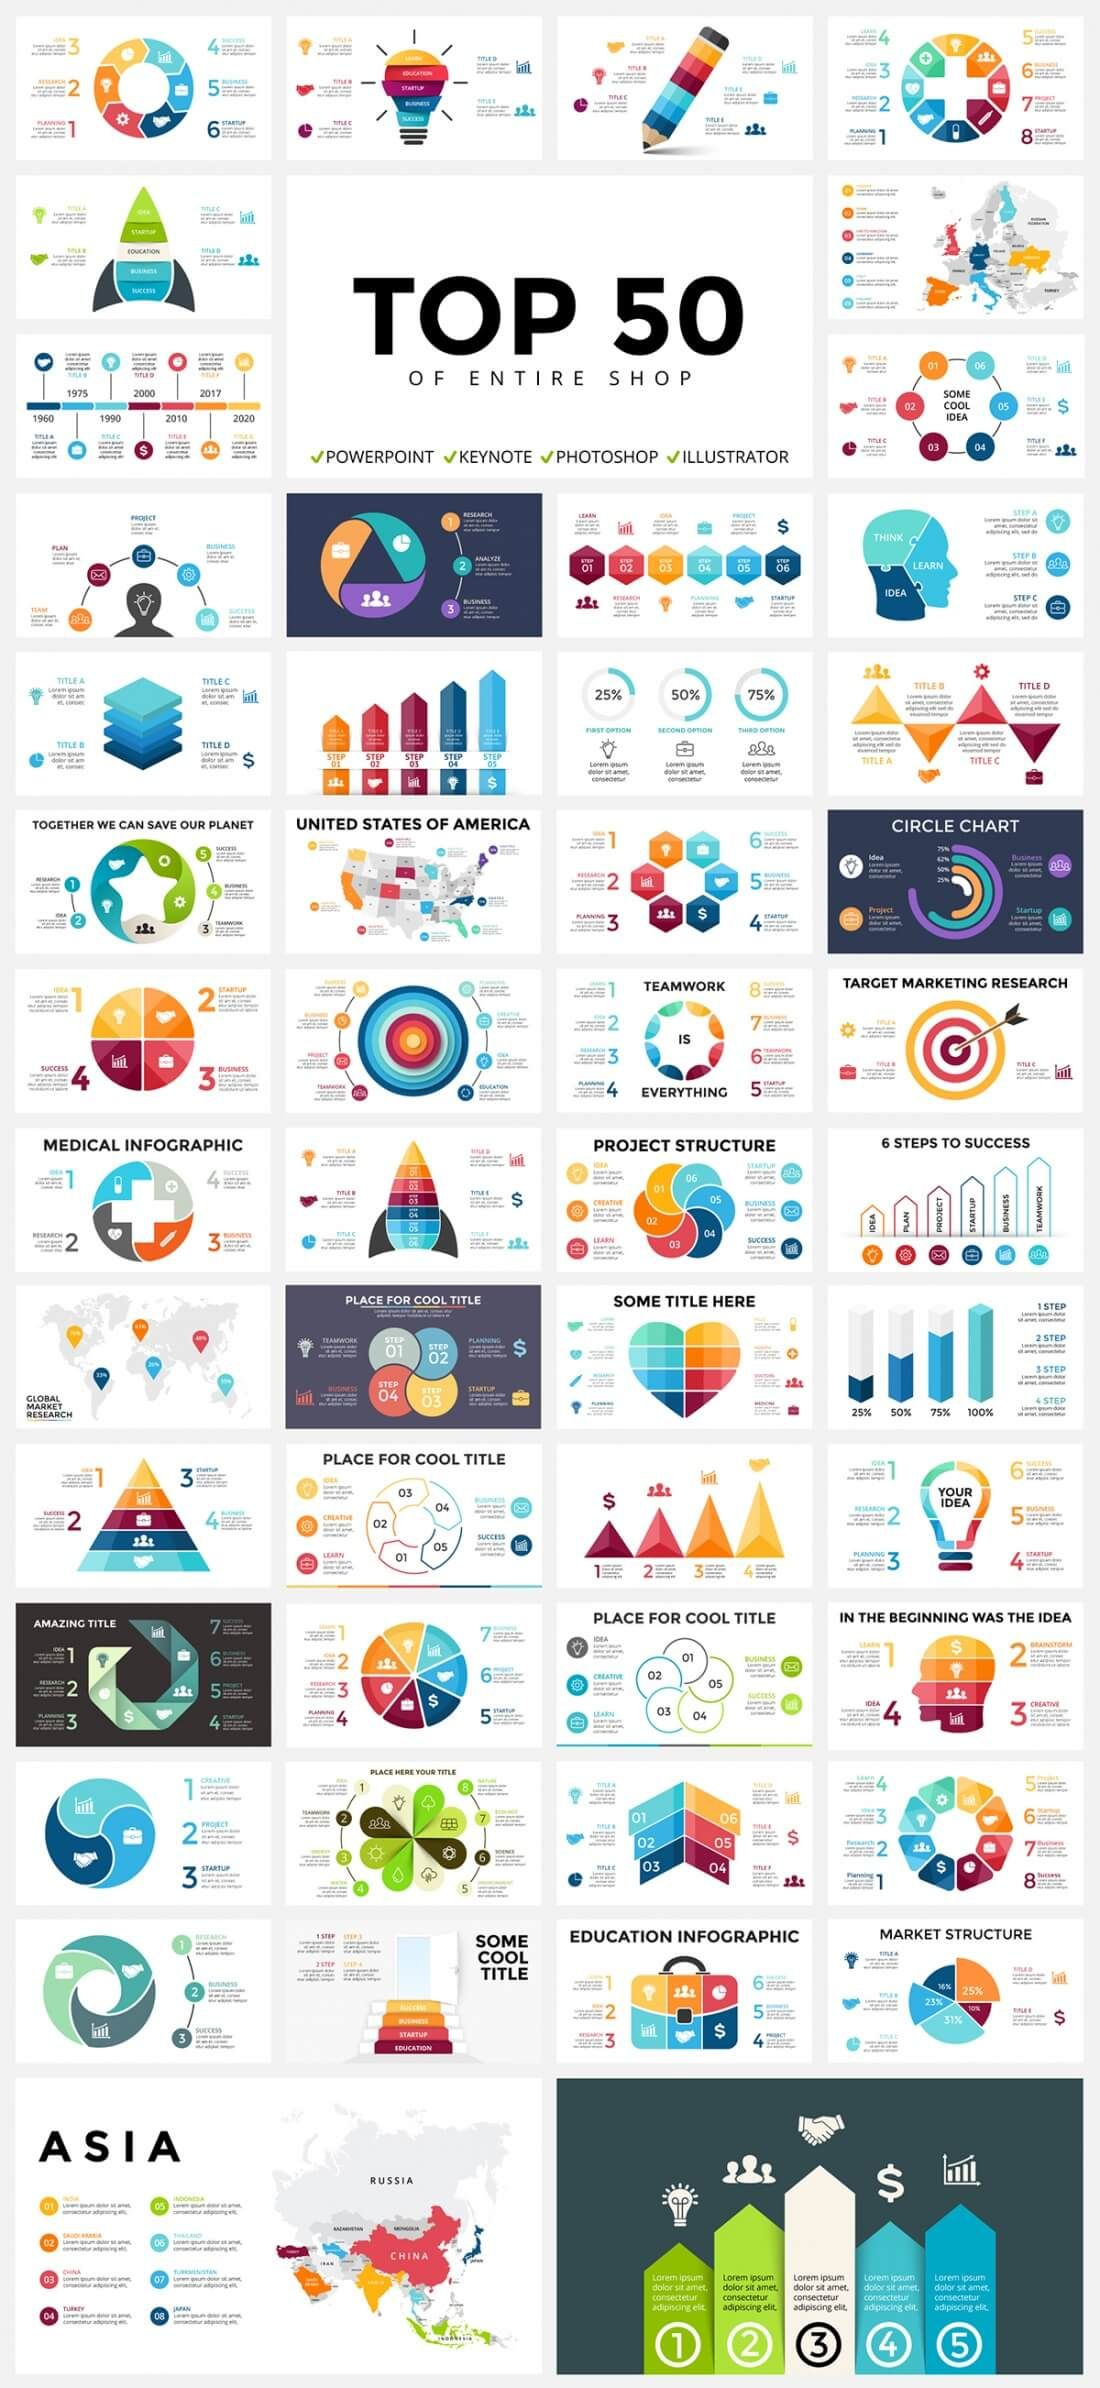 find customisable infographic templates indesign infographic